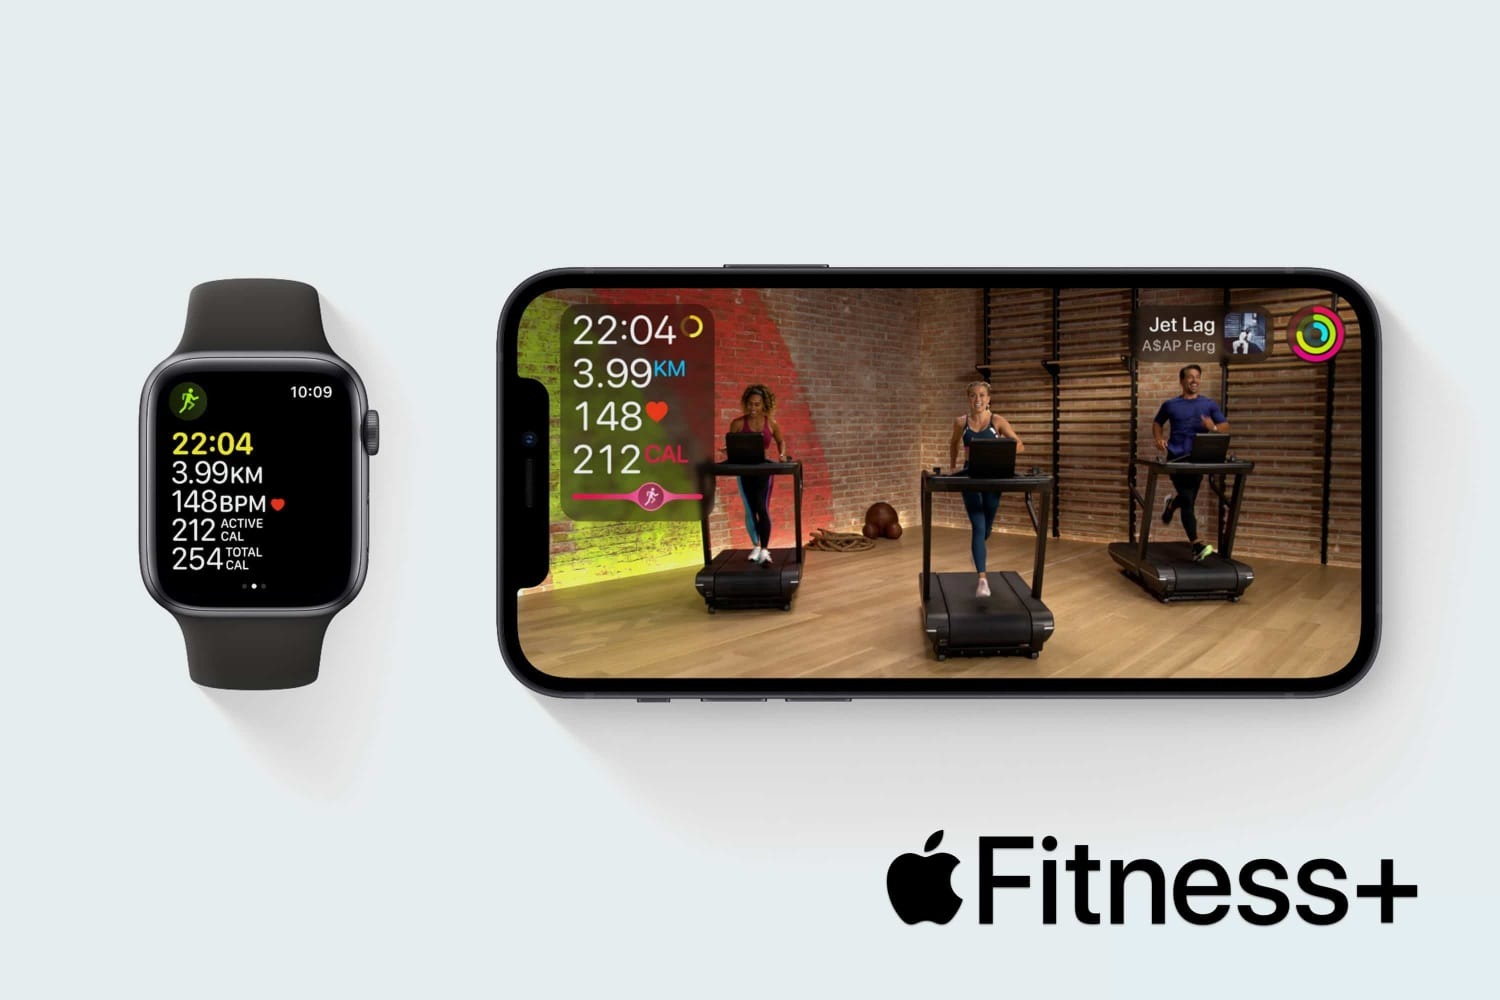 get-an-activity-award-with-apple-fitness-20201218-1